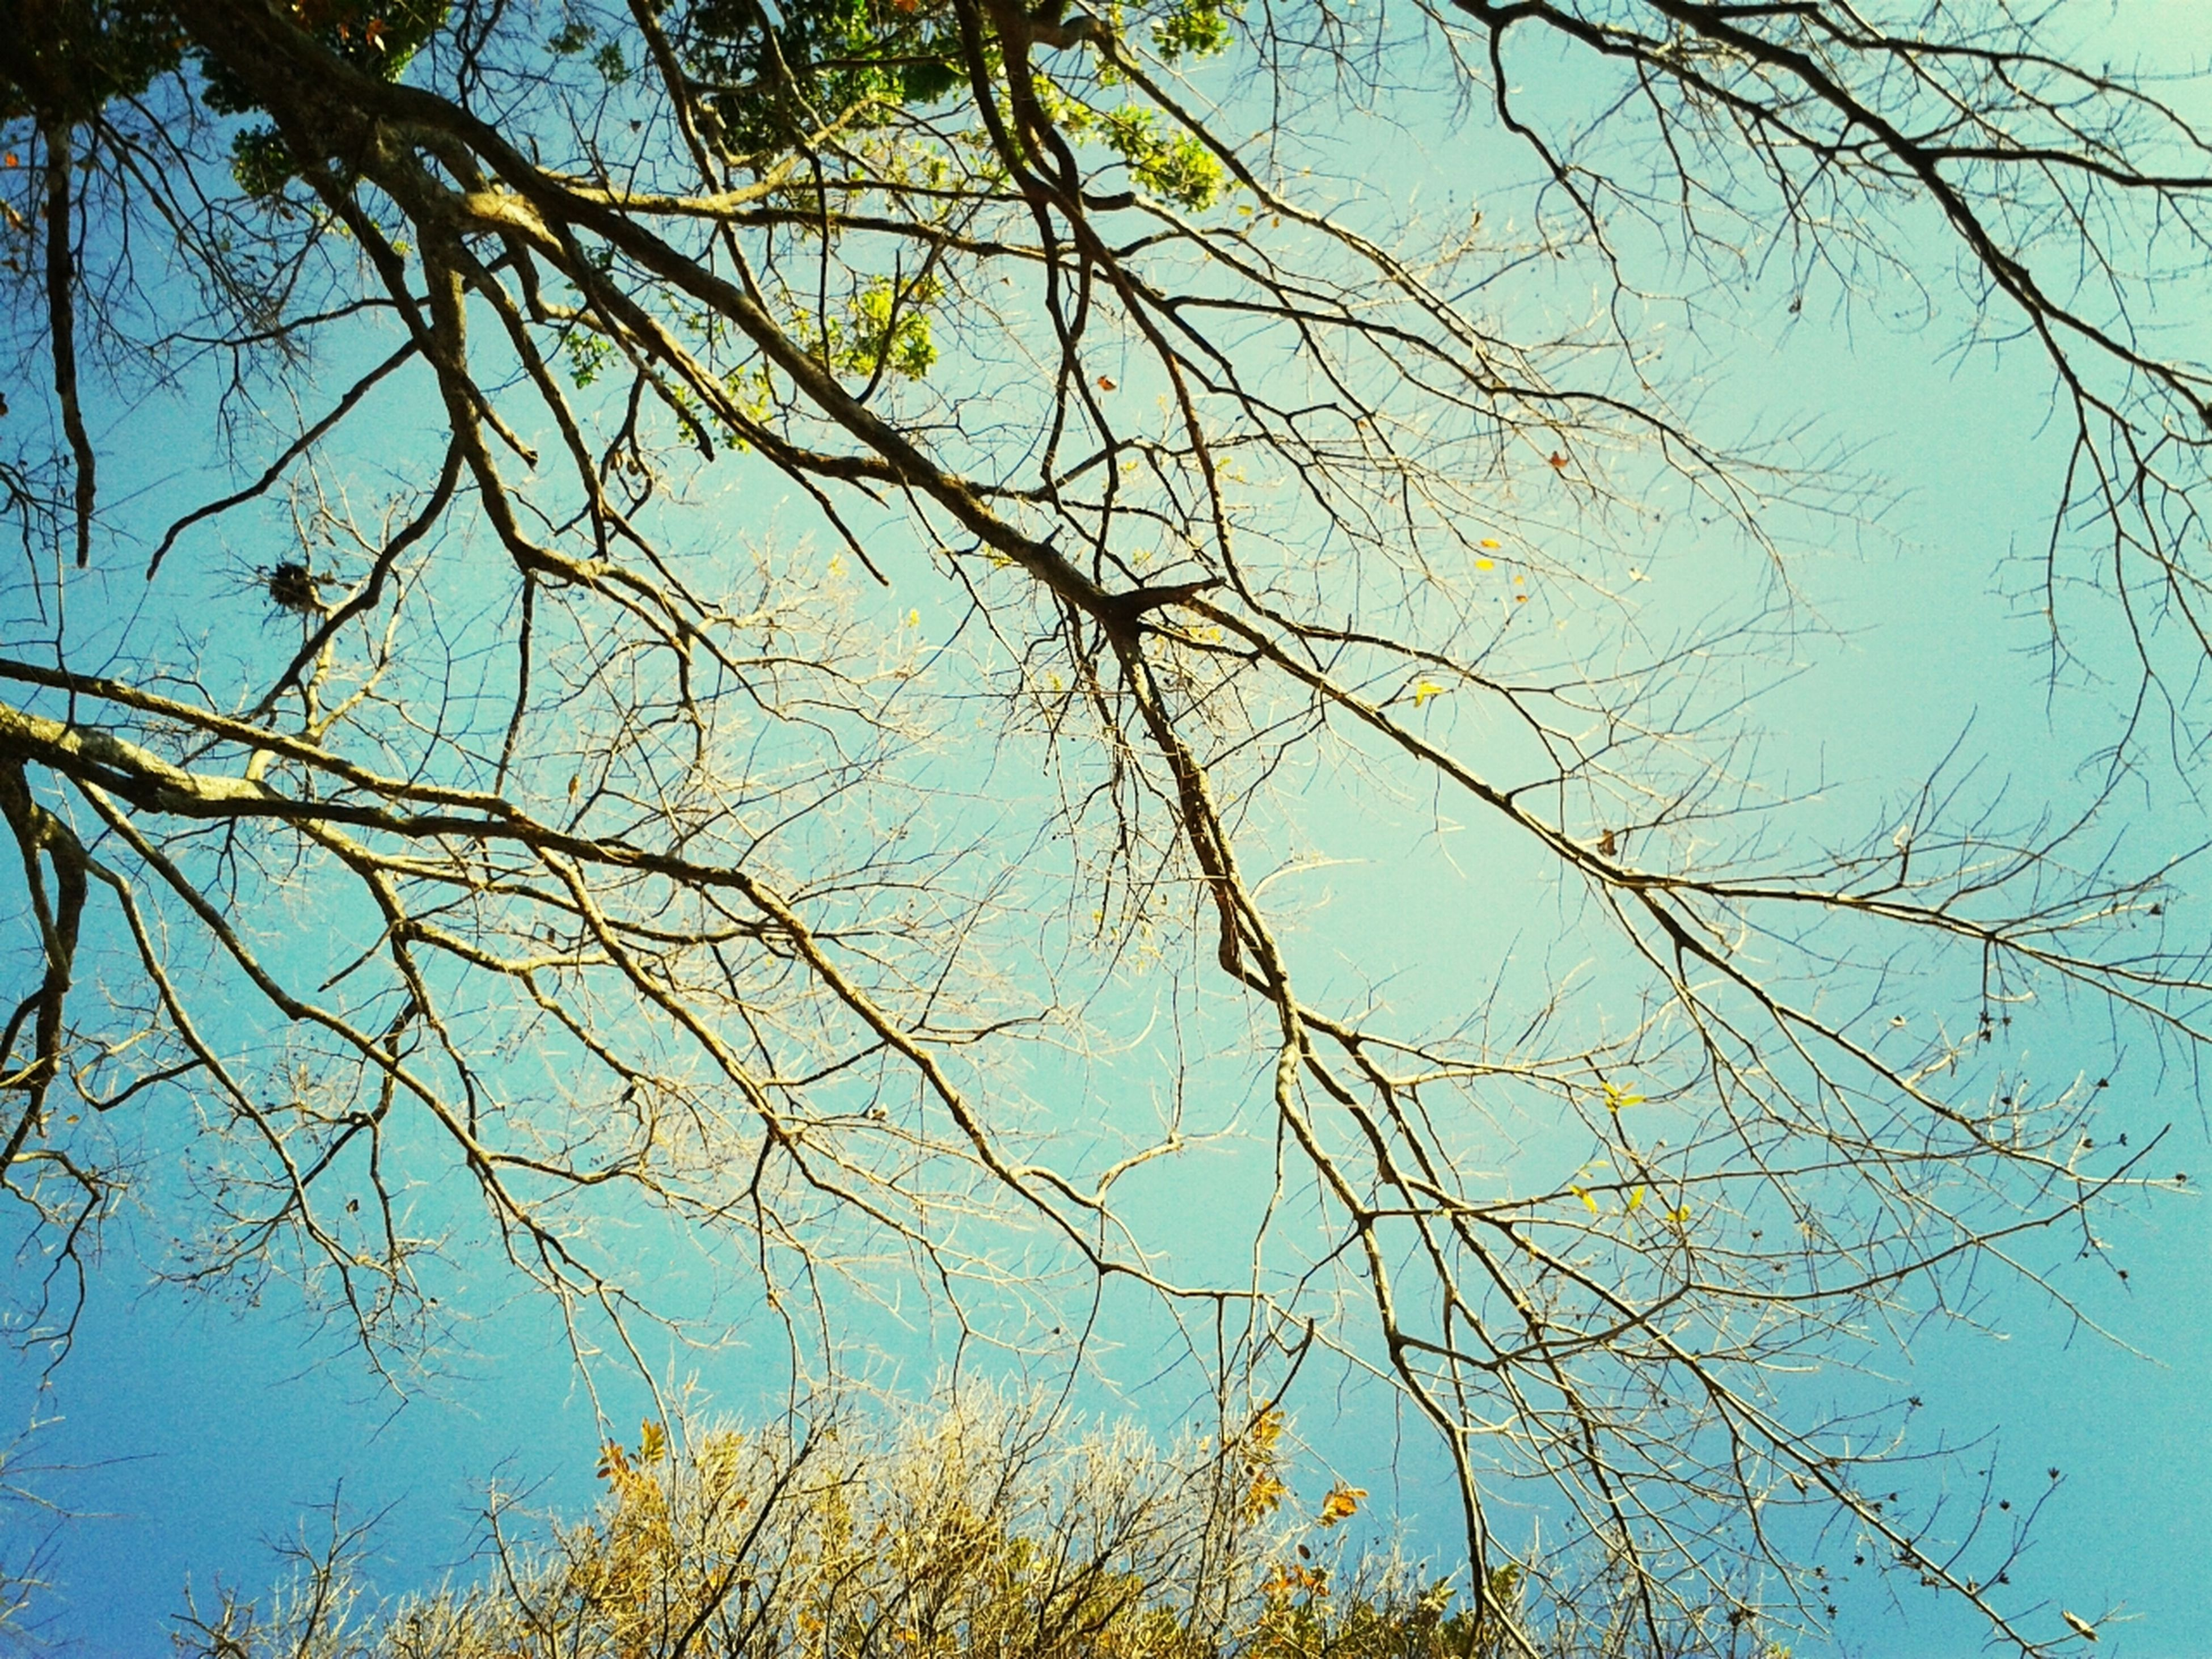 branch, low angle view, tree, clear sky, blue, bare tree, nature, tranquility, growth, beauty in nature, sky, outdoors, day, scenics, no people, high section, tree trunk, sunlight, autumn, tranquil scene